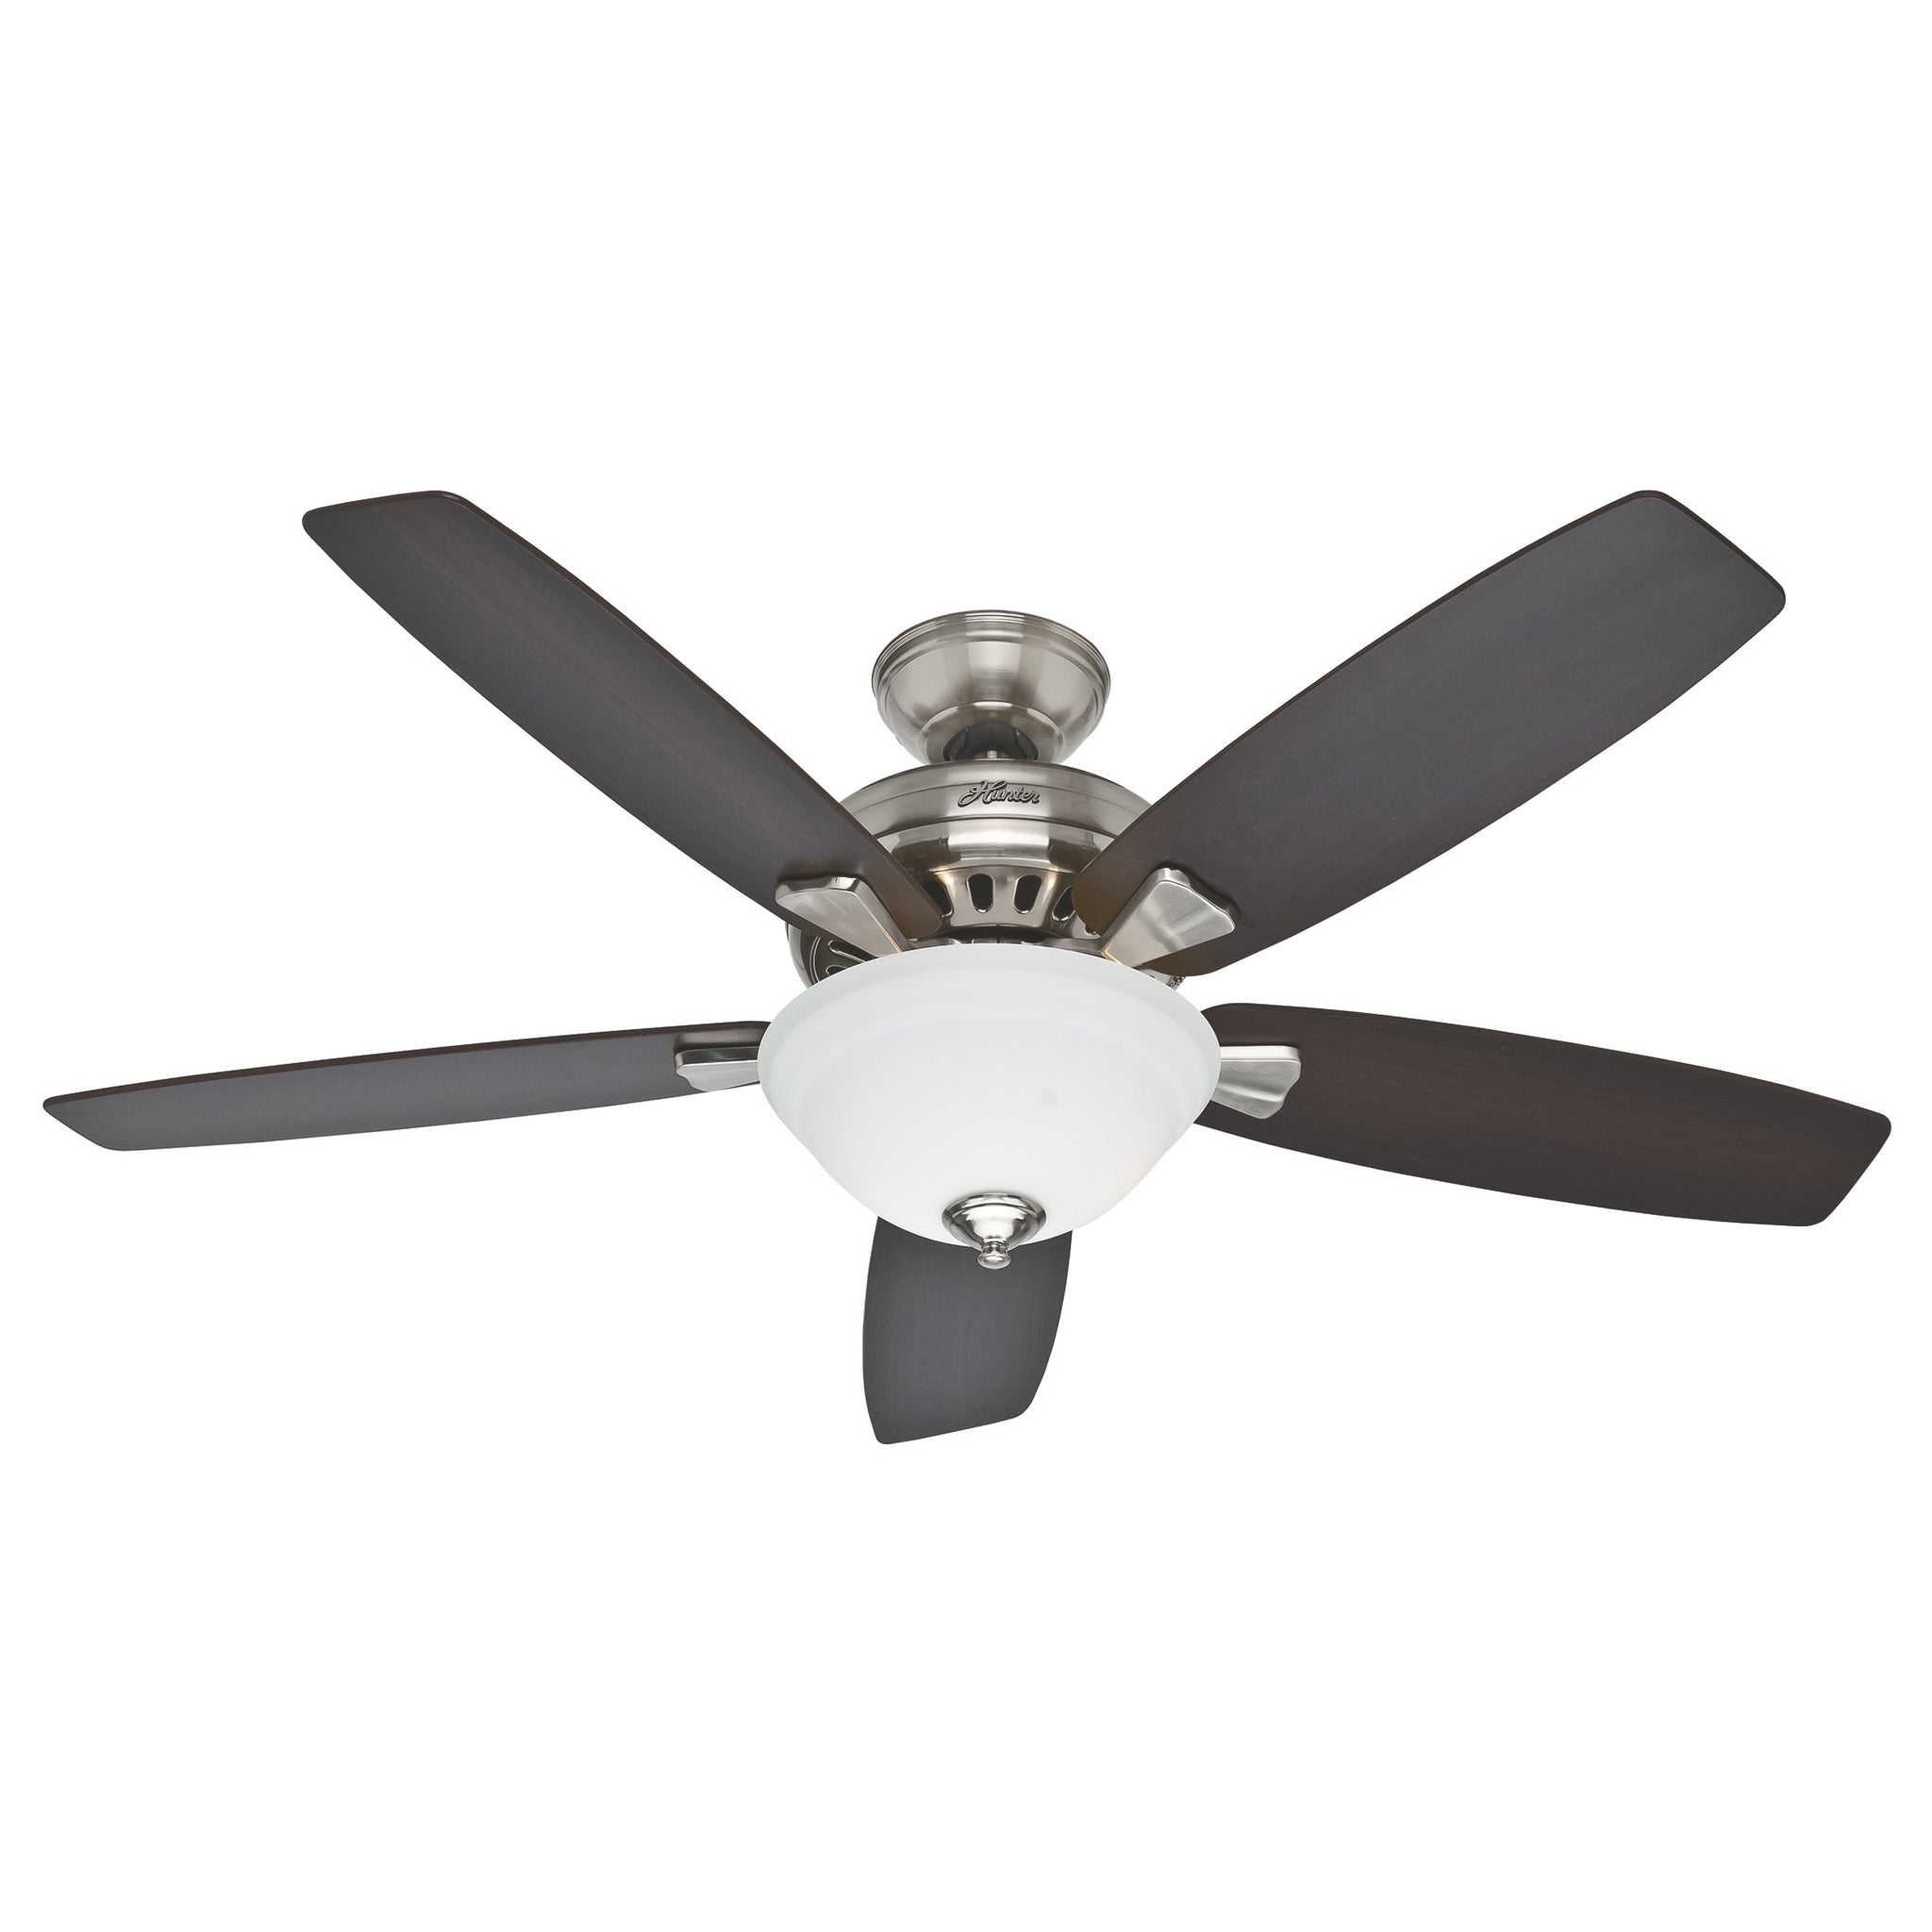 Wood and Metal 52-Inch Ceiling Fan